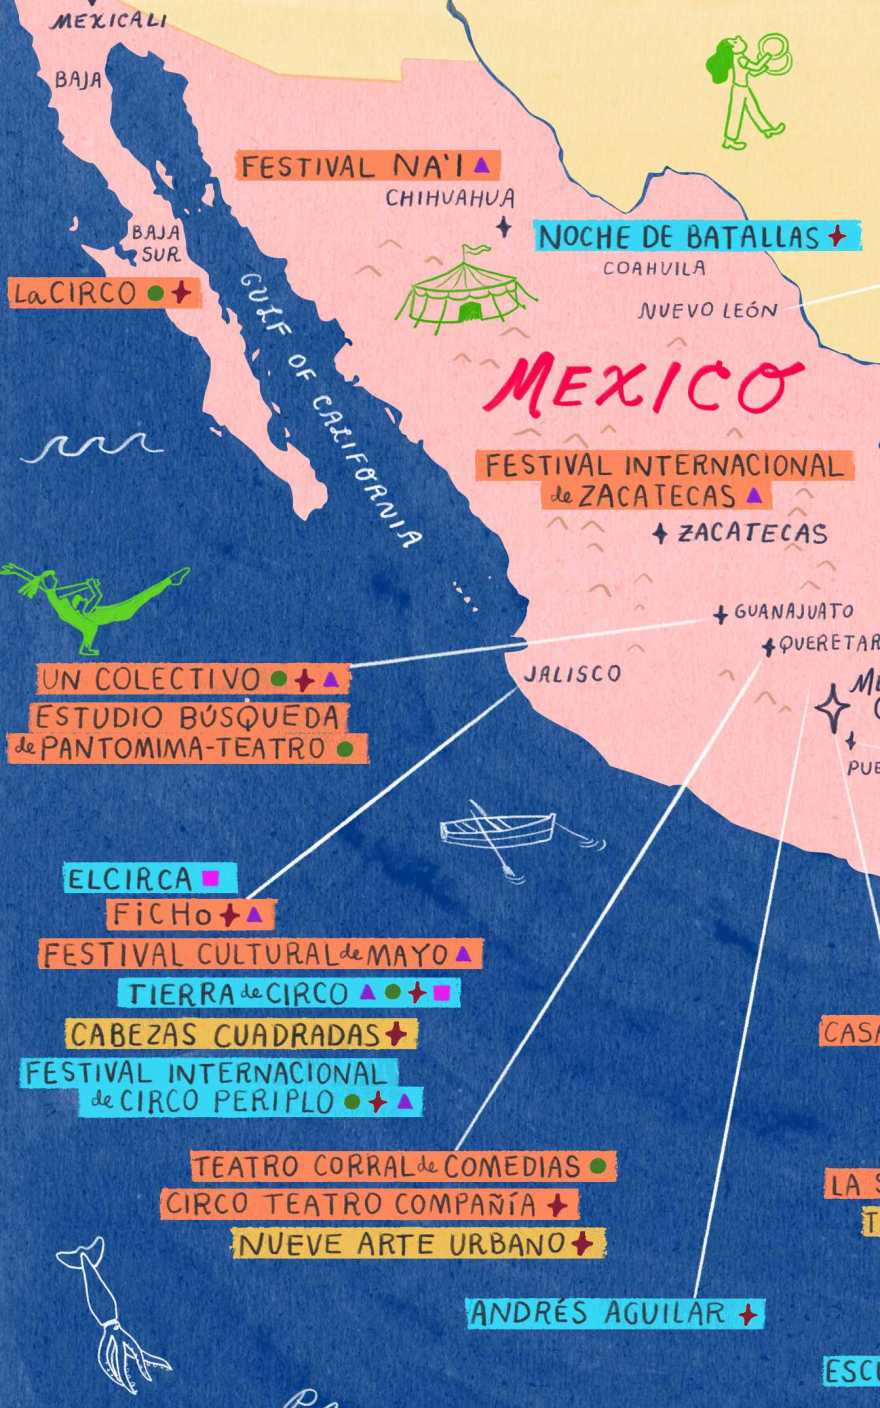 A colorful map of Mexico with many labels of arts entities